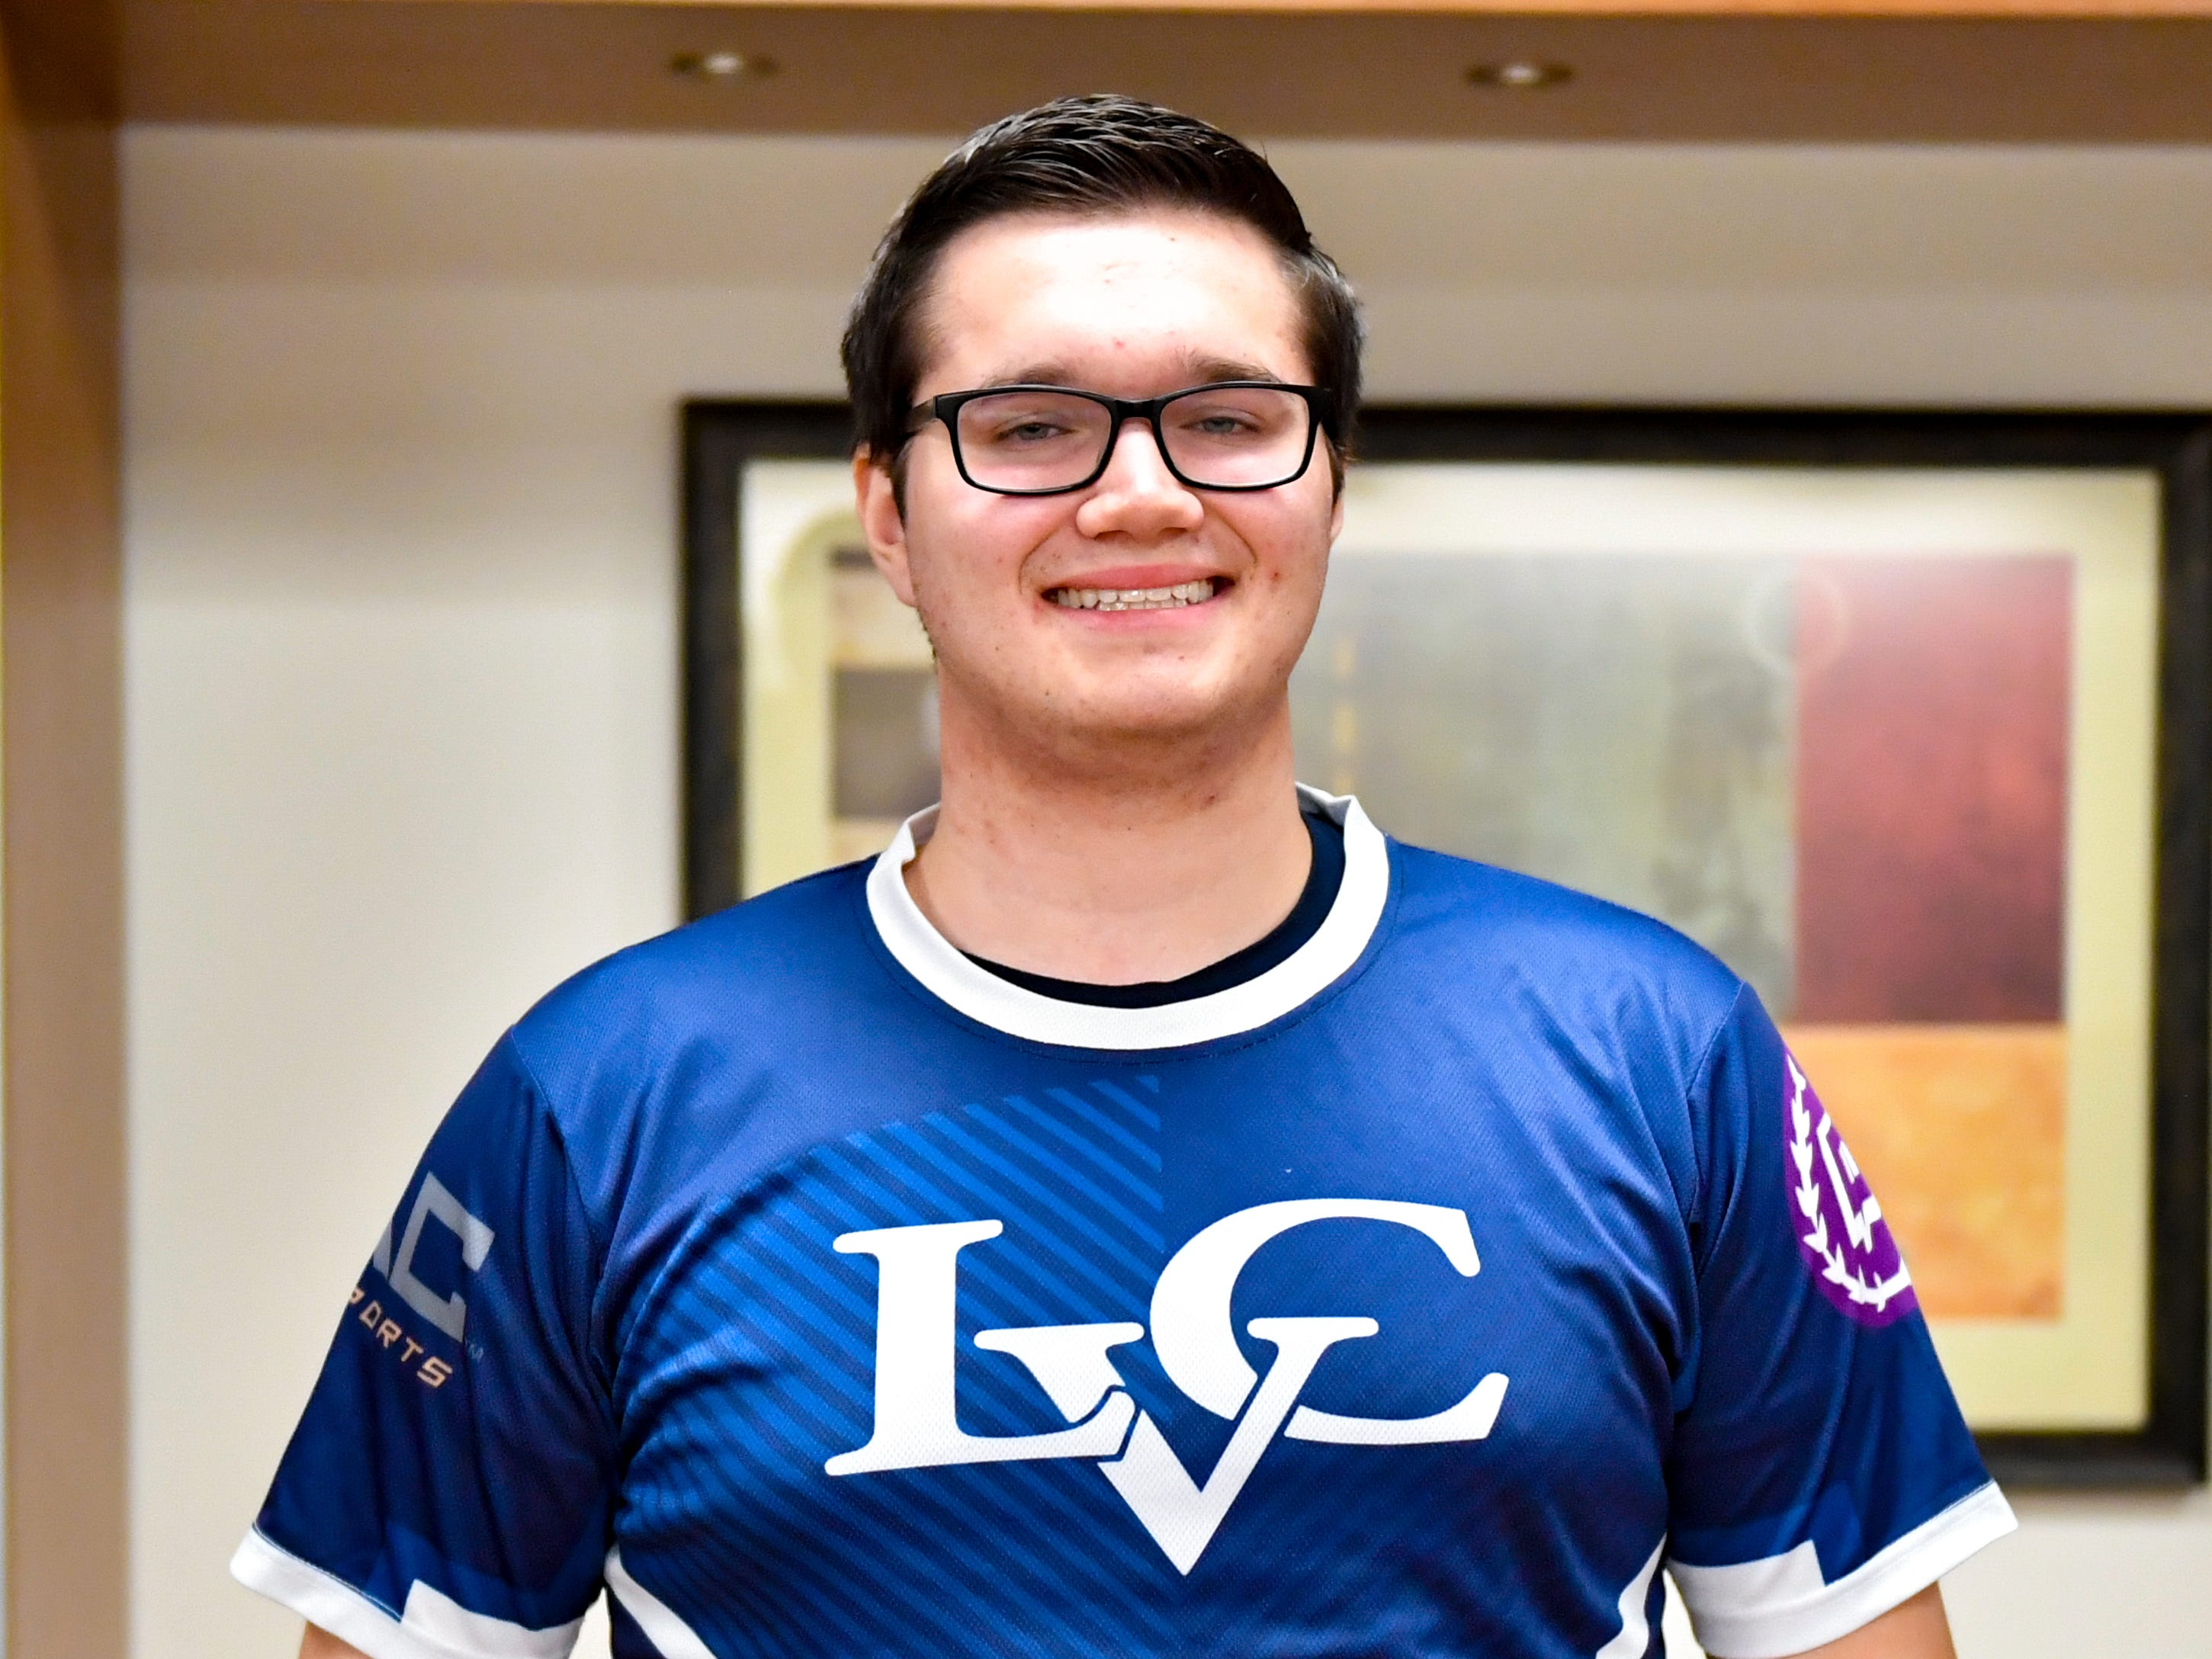 Coulson Miller is a senior at Lebanon Valley College majoring in Business Administration and minoring in Computer Science. The York native has been a varsity Esports athlete since it came to LVC last year. He primarily plays League of Legends and Smite for the team.